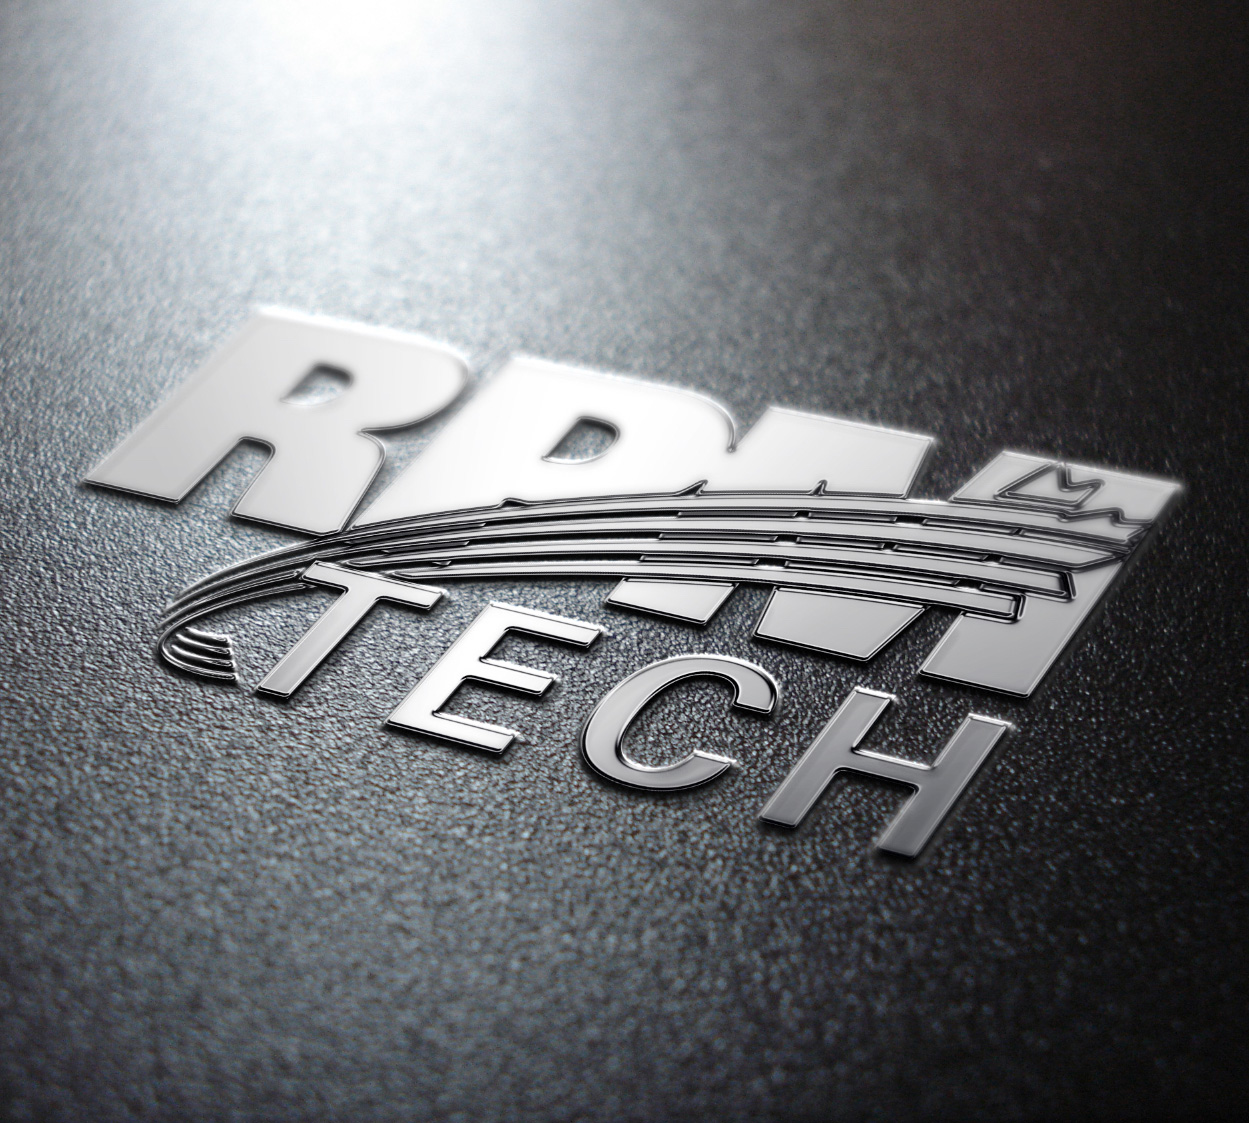 R.P.M. Tech | Equipment repairs | Maintenance | Experts